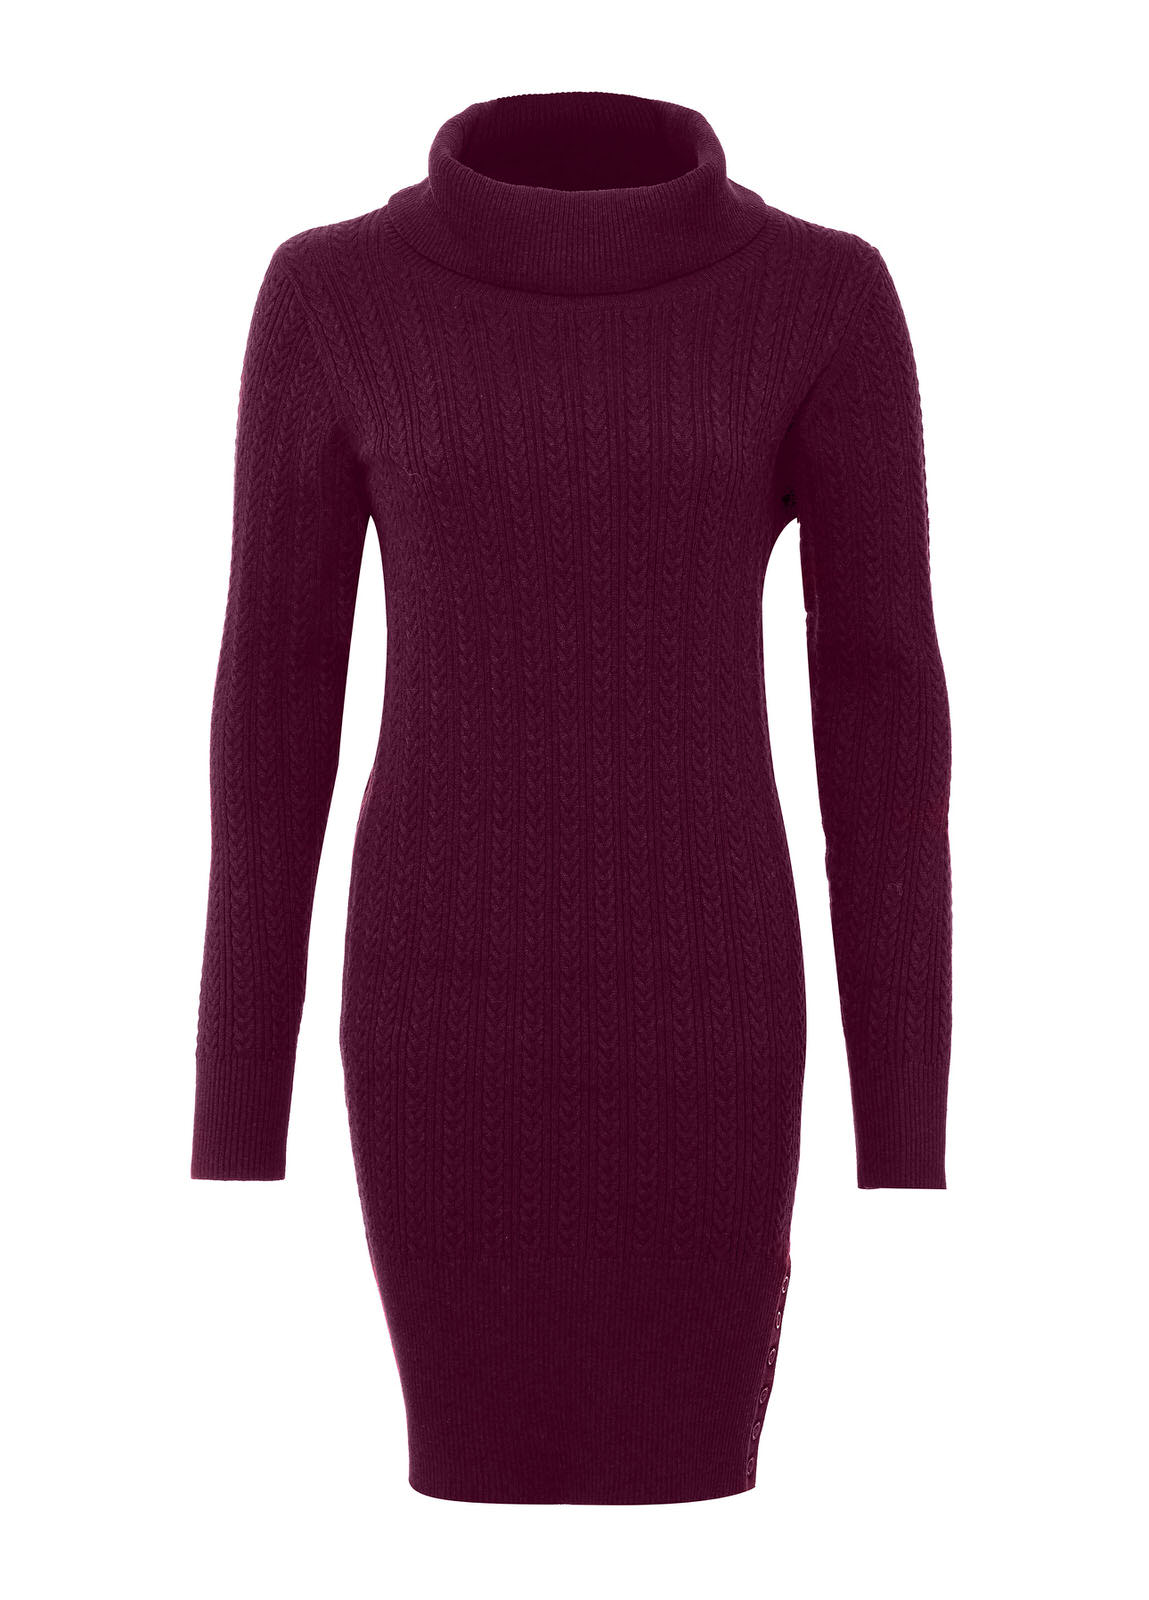 Westport_Sweater_dress_Malbec_Image_1